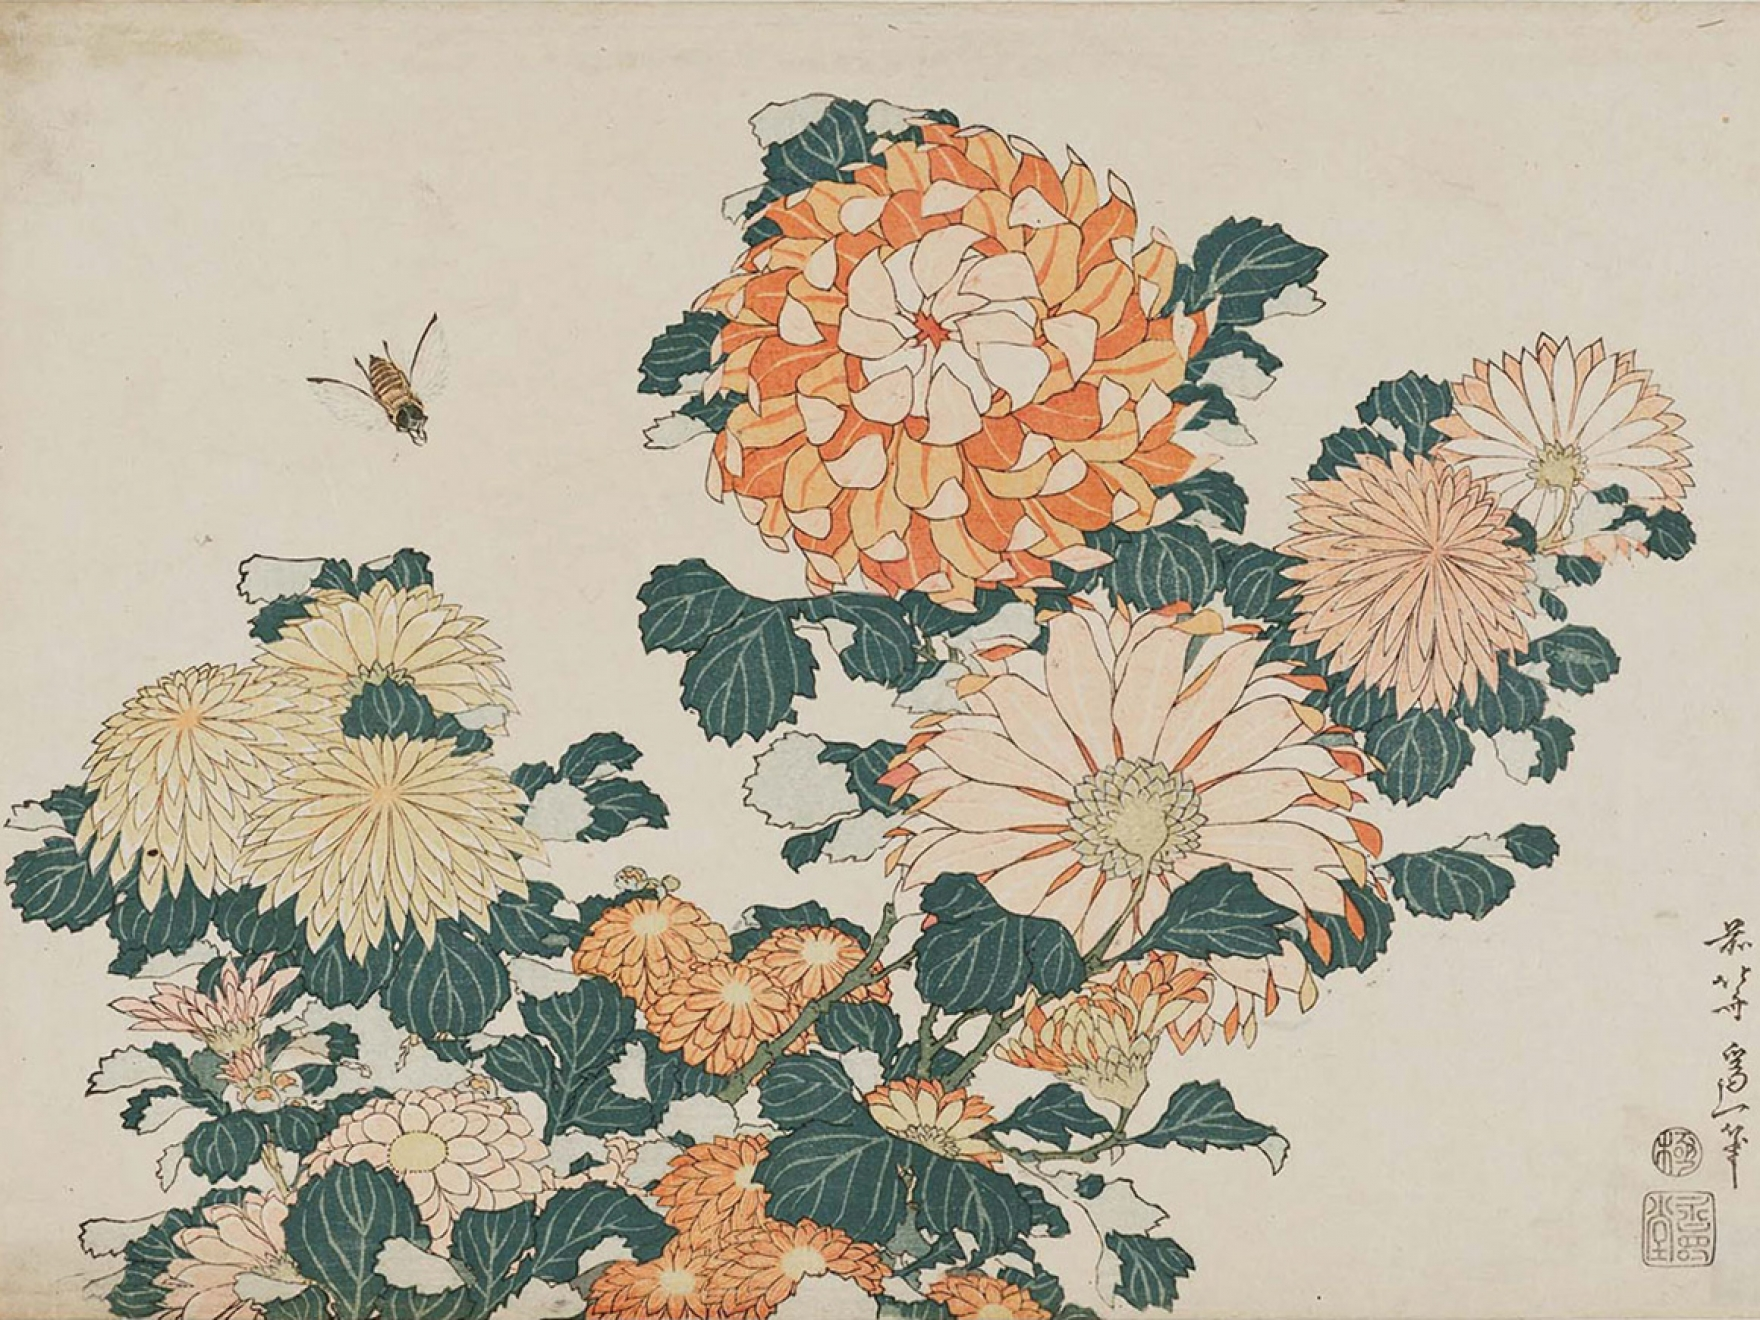 Color in japanese art - Katsushika Hokusai Chrysanthemums And Horsefly From An Untitled Series Known As Large Flowers Japanese Edo Period About 1833 34 Woodblock Prin